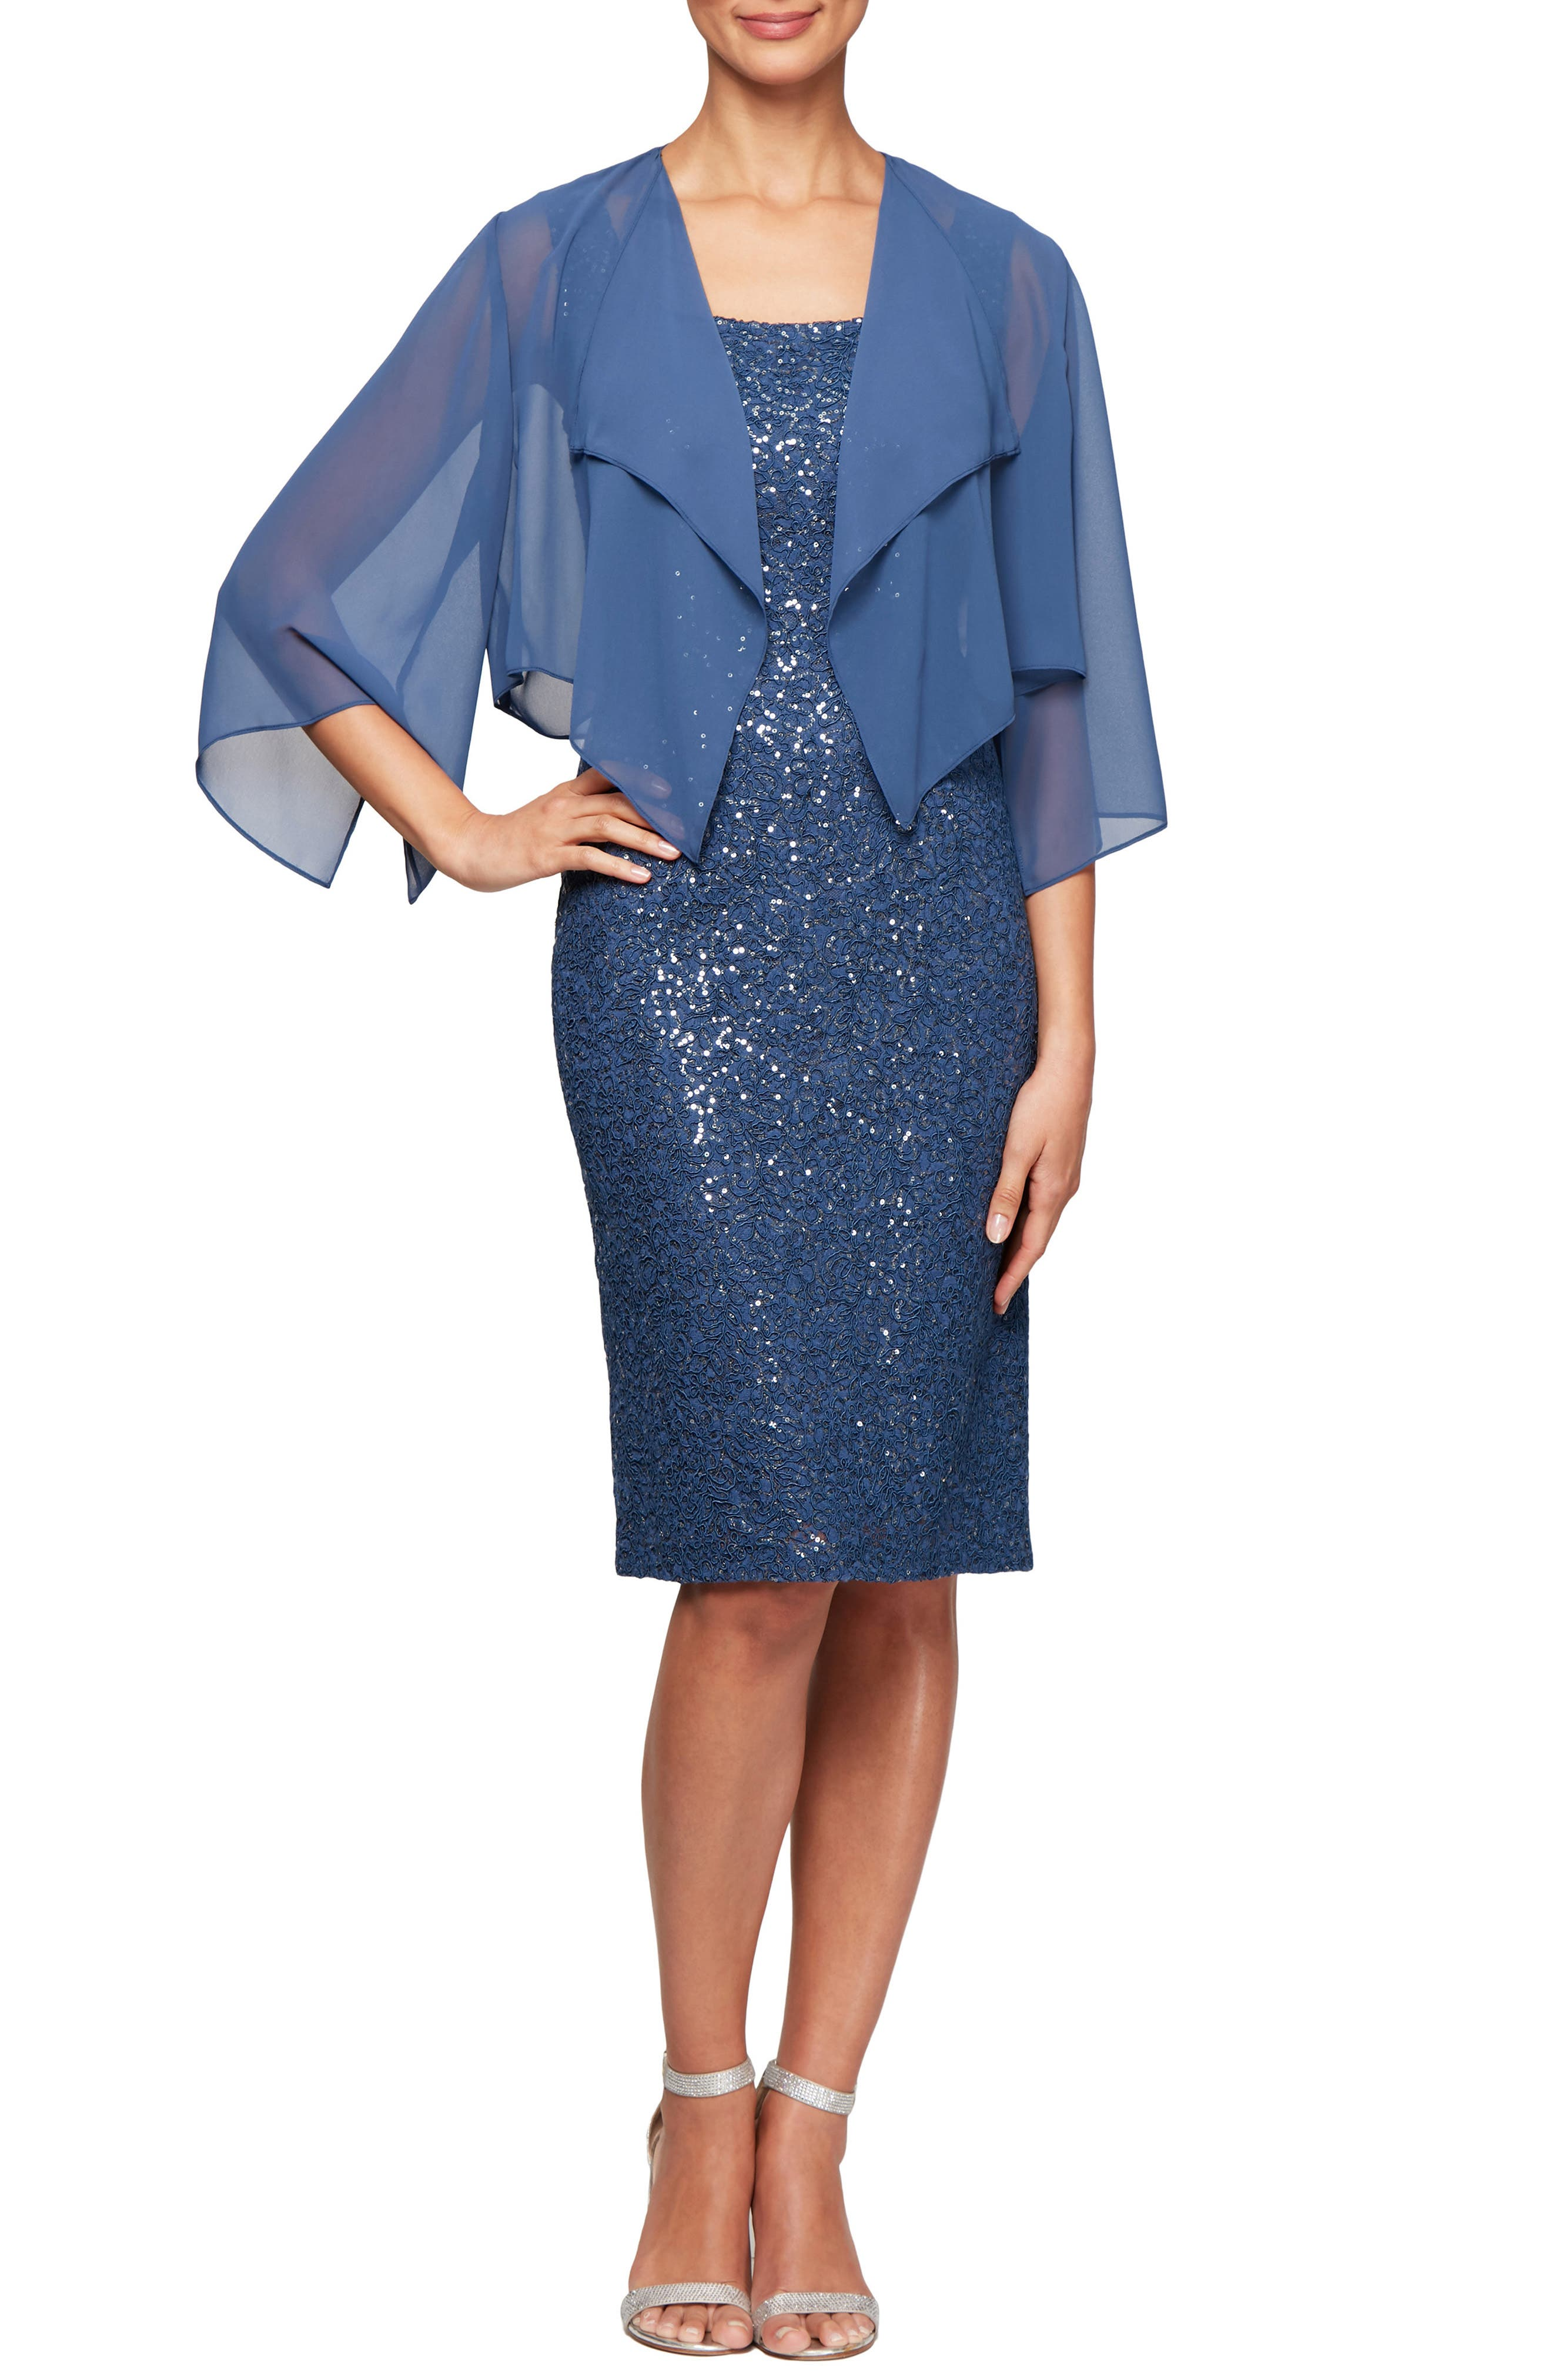 Petite Alex Evenings Sequin Lace Cocktail Dress With Capelet Overlay, Blue